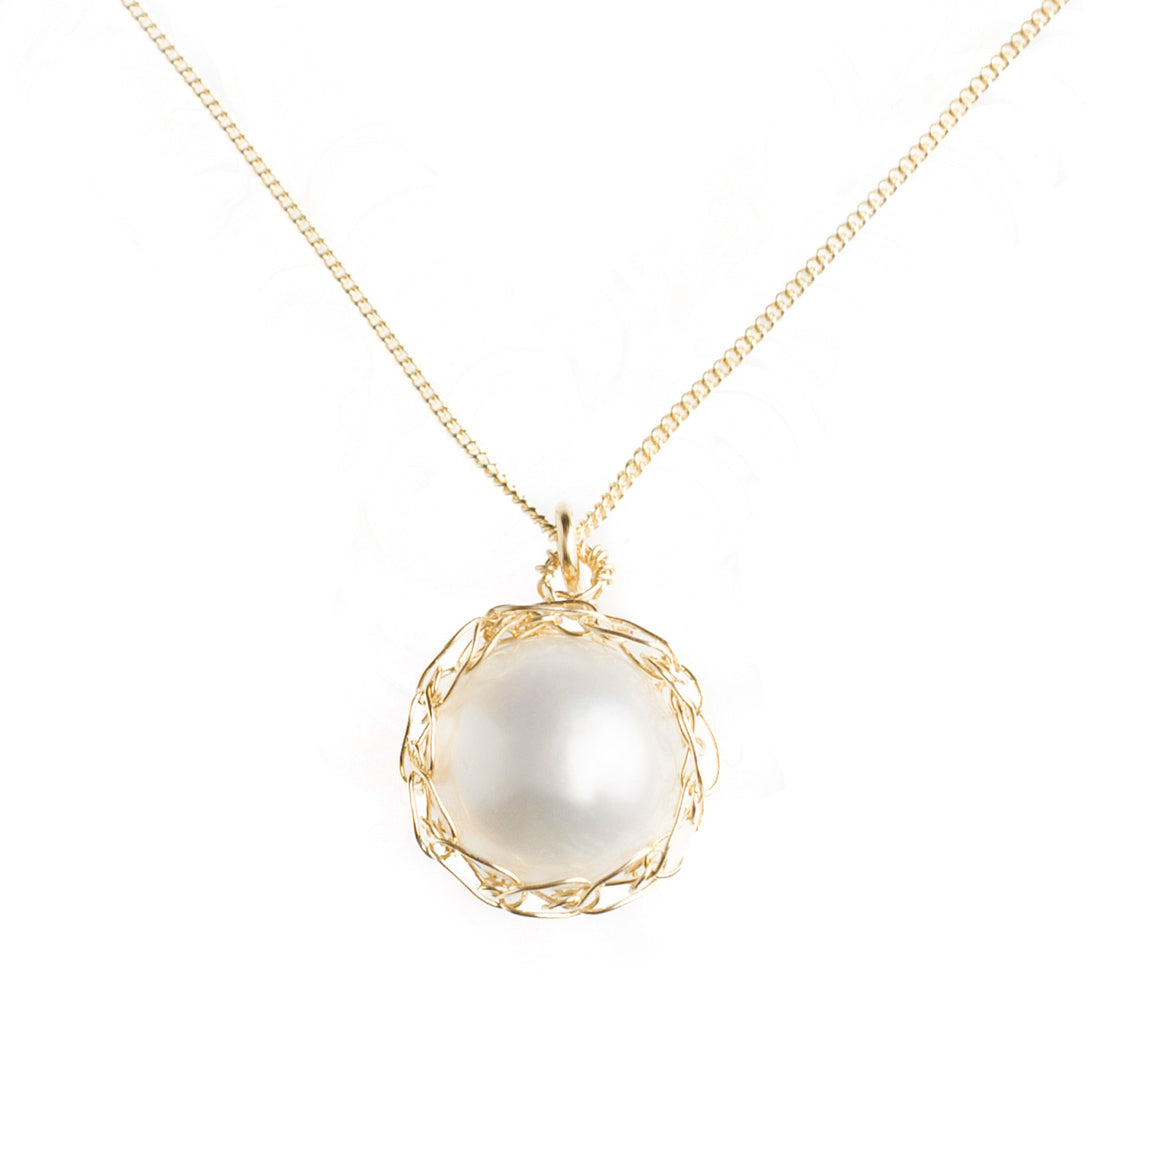 LARGE Gold pearl necklace - Pearl jewelry - Yooladesign